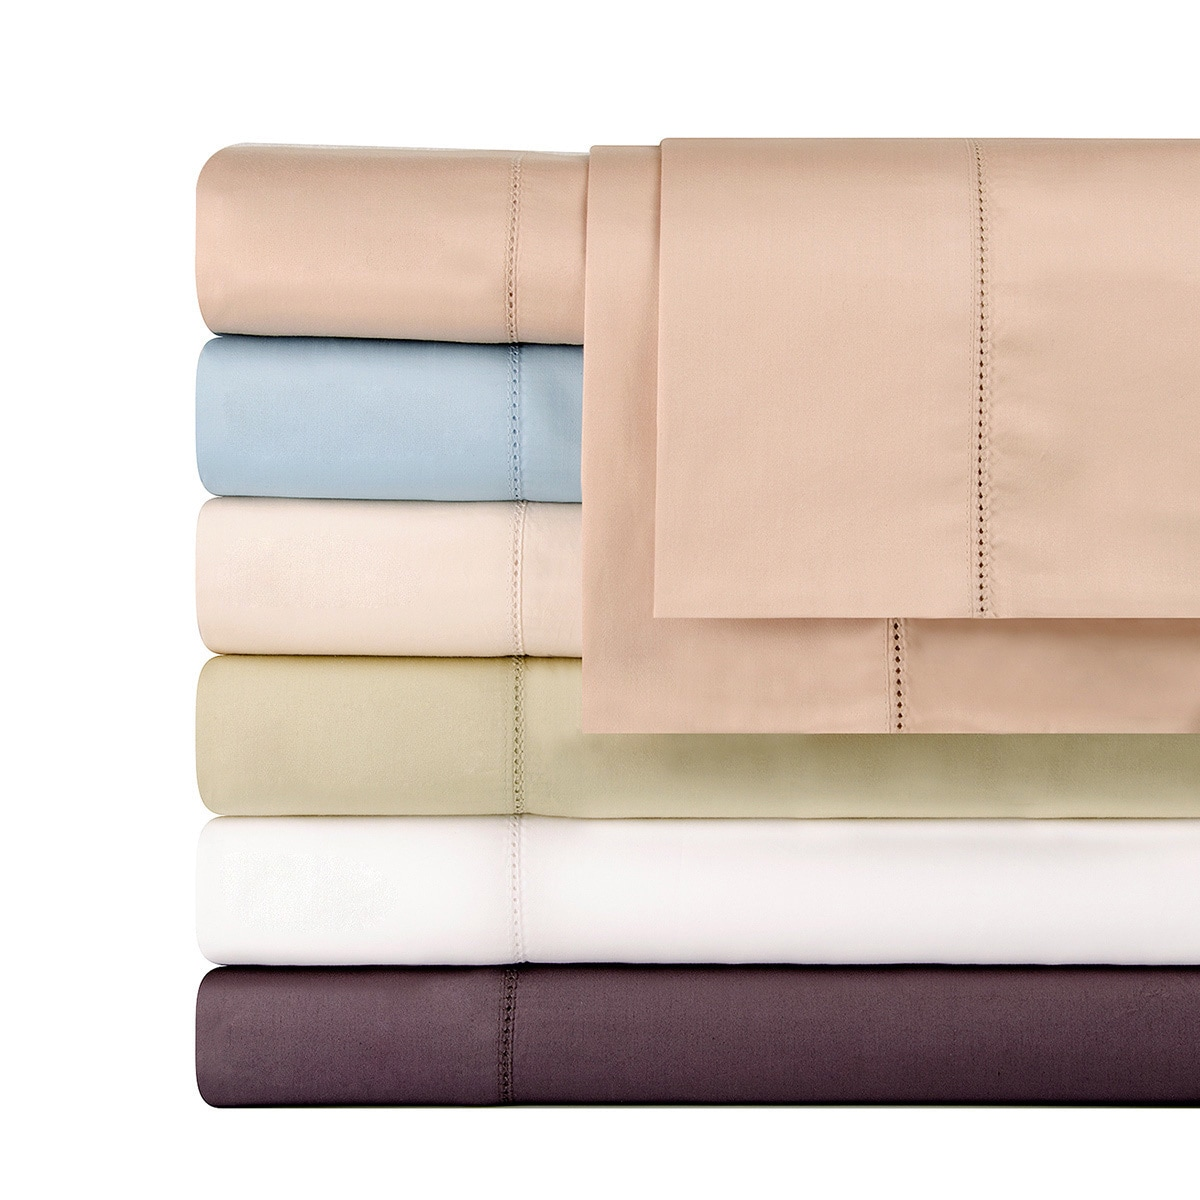 Shop Celeste Home Pima Cotton Deep Pocket Sateen 610 Thread Count Sheet Set    On Sale   Free Shipping On Orders Over $45   Overstock.com   8843318